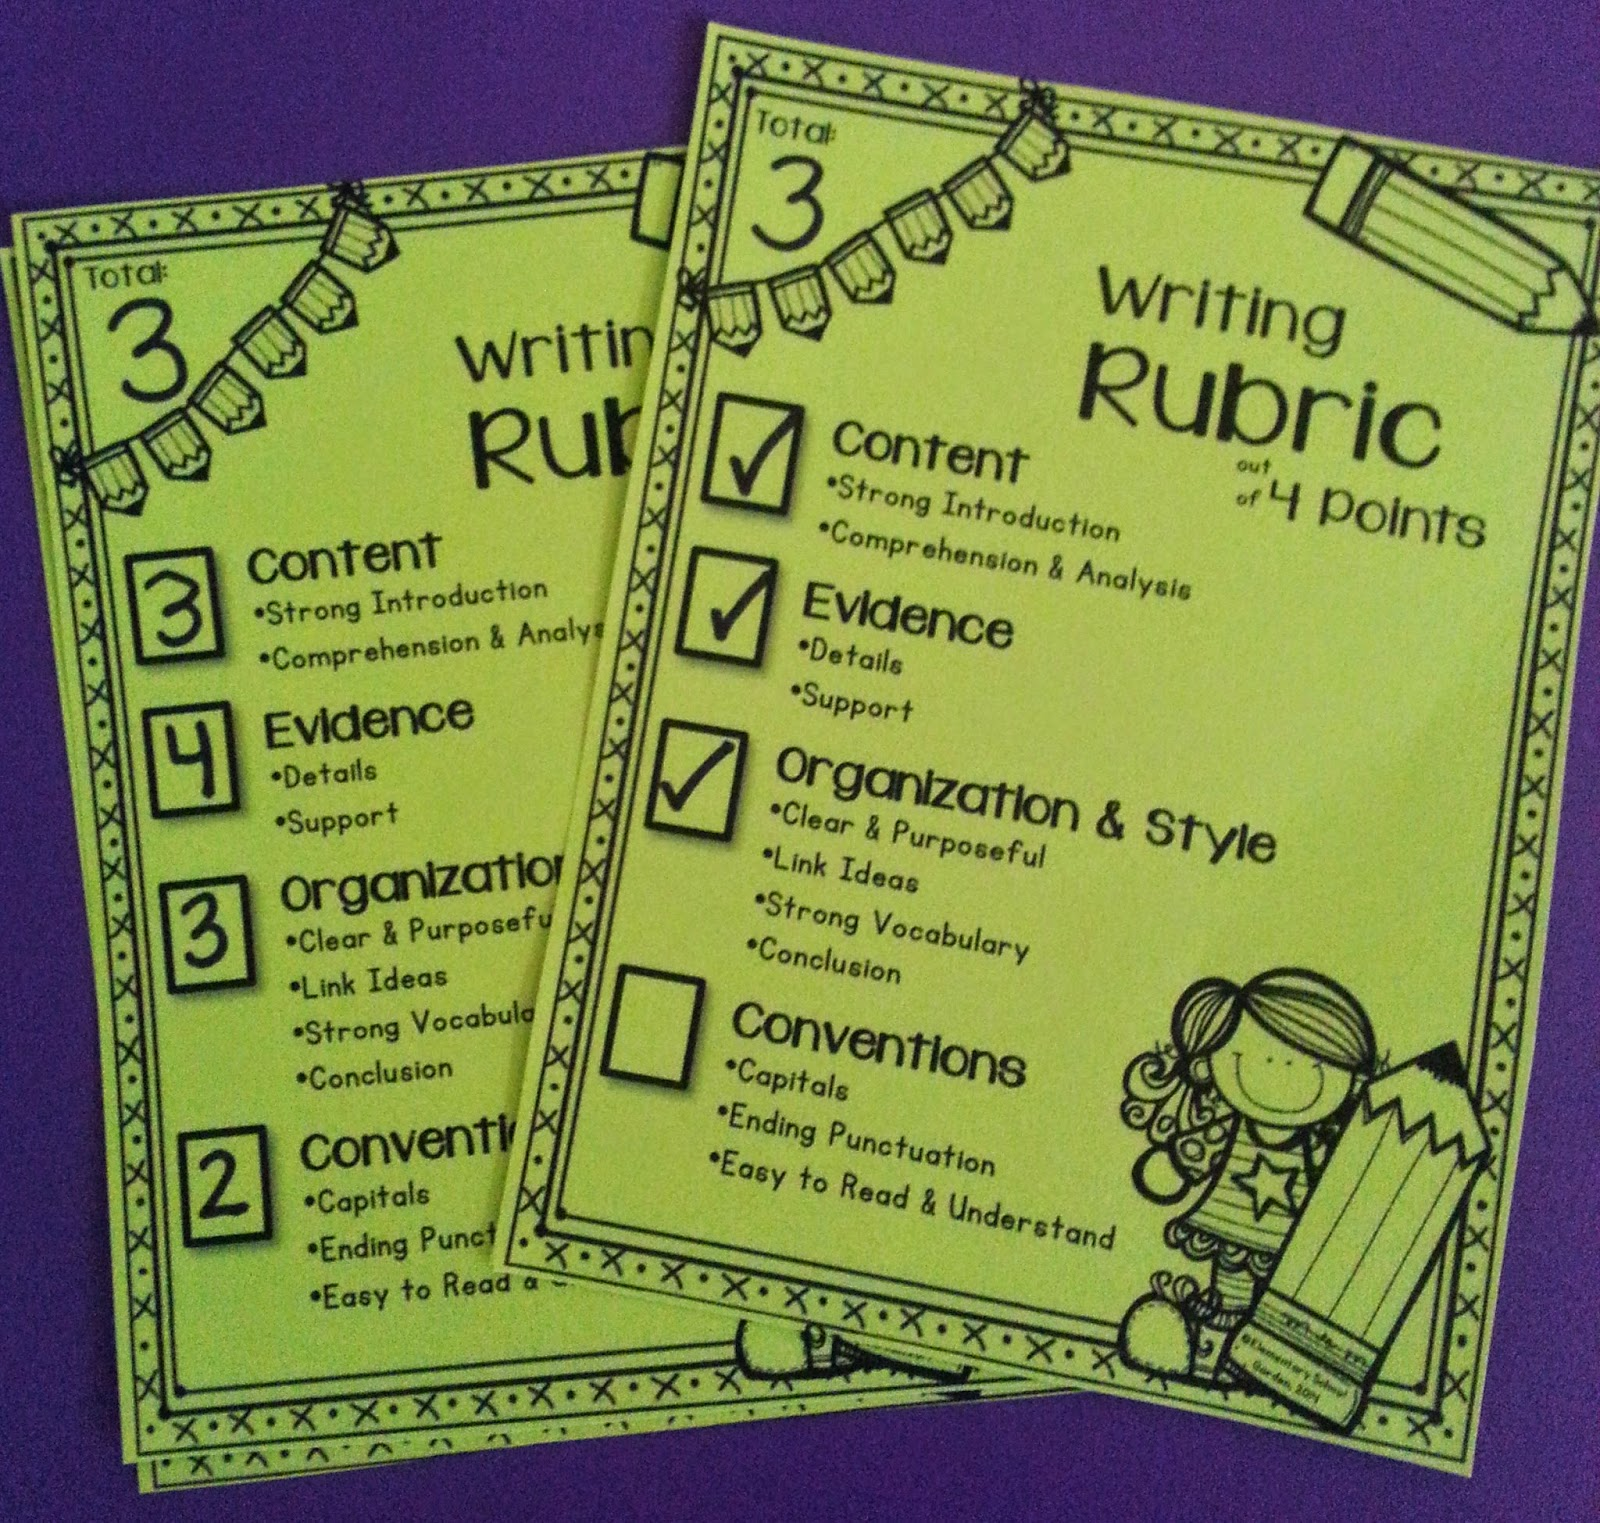 Elementary School Garden: Assessing Student Writing with a 4-Point Rubric